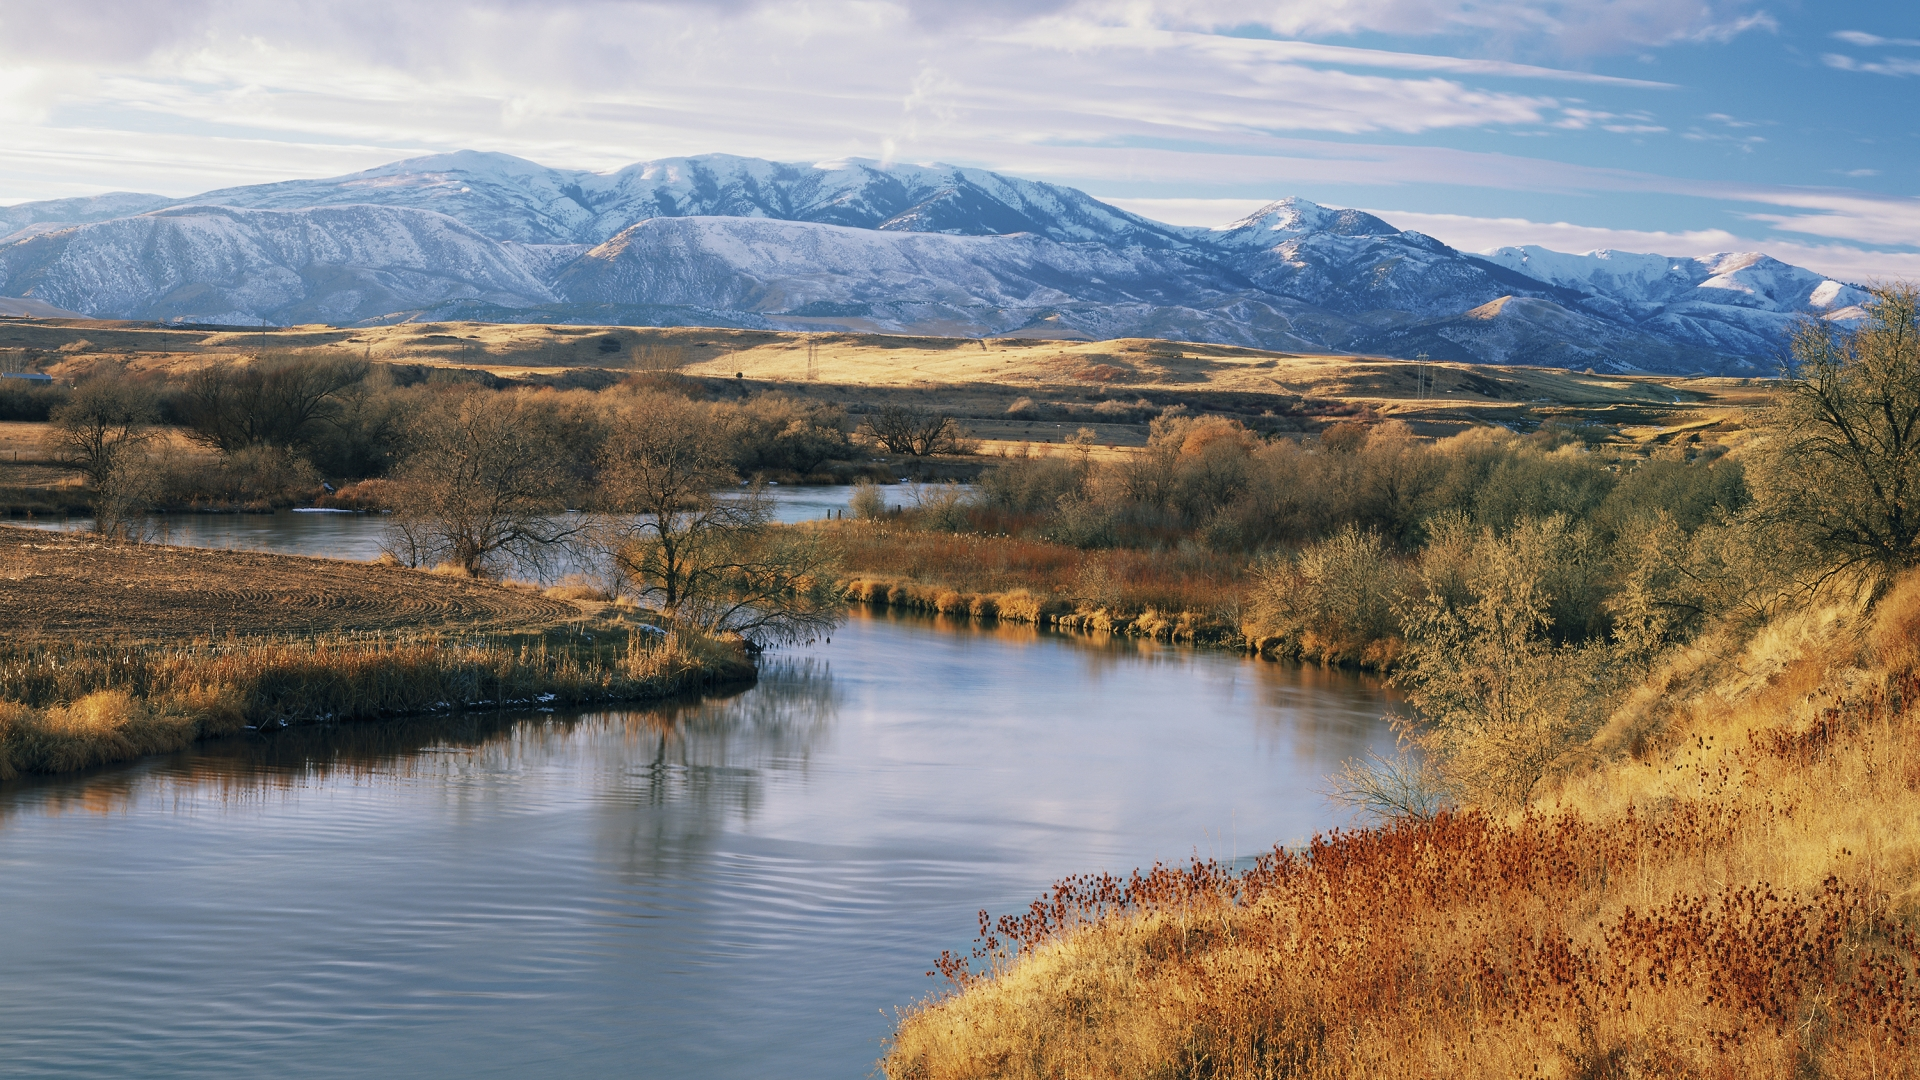 Bear River with Bannock Range in distance near Preston, Idaho. (Credit: Scott Smith/Getty Images)